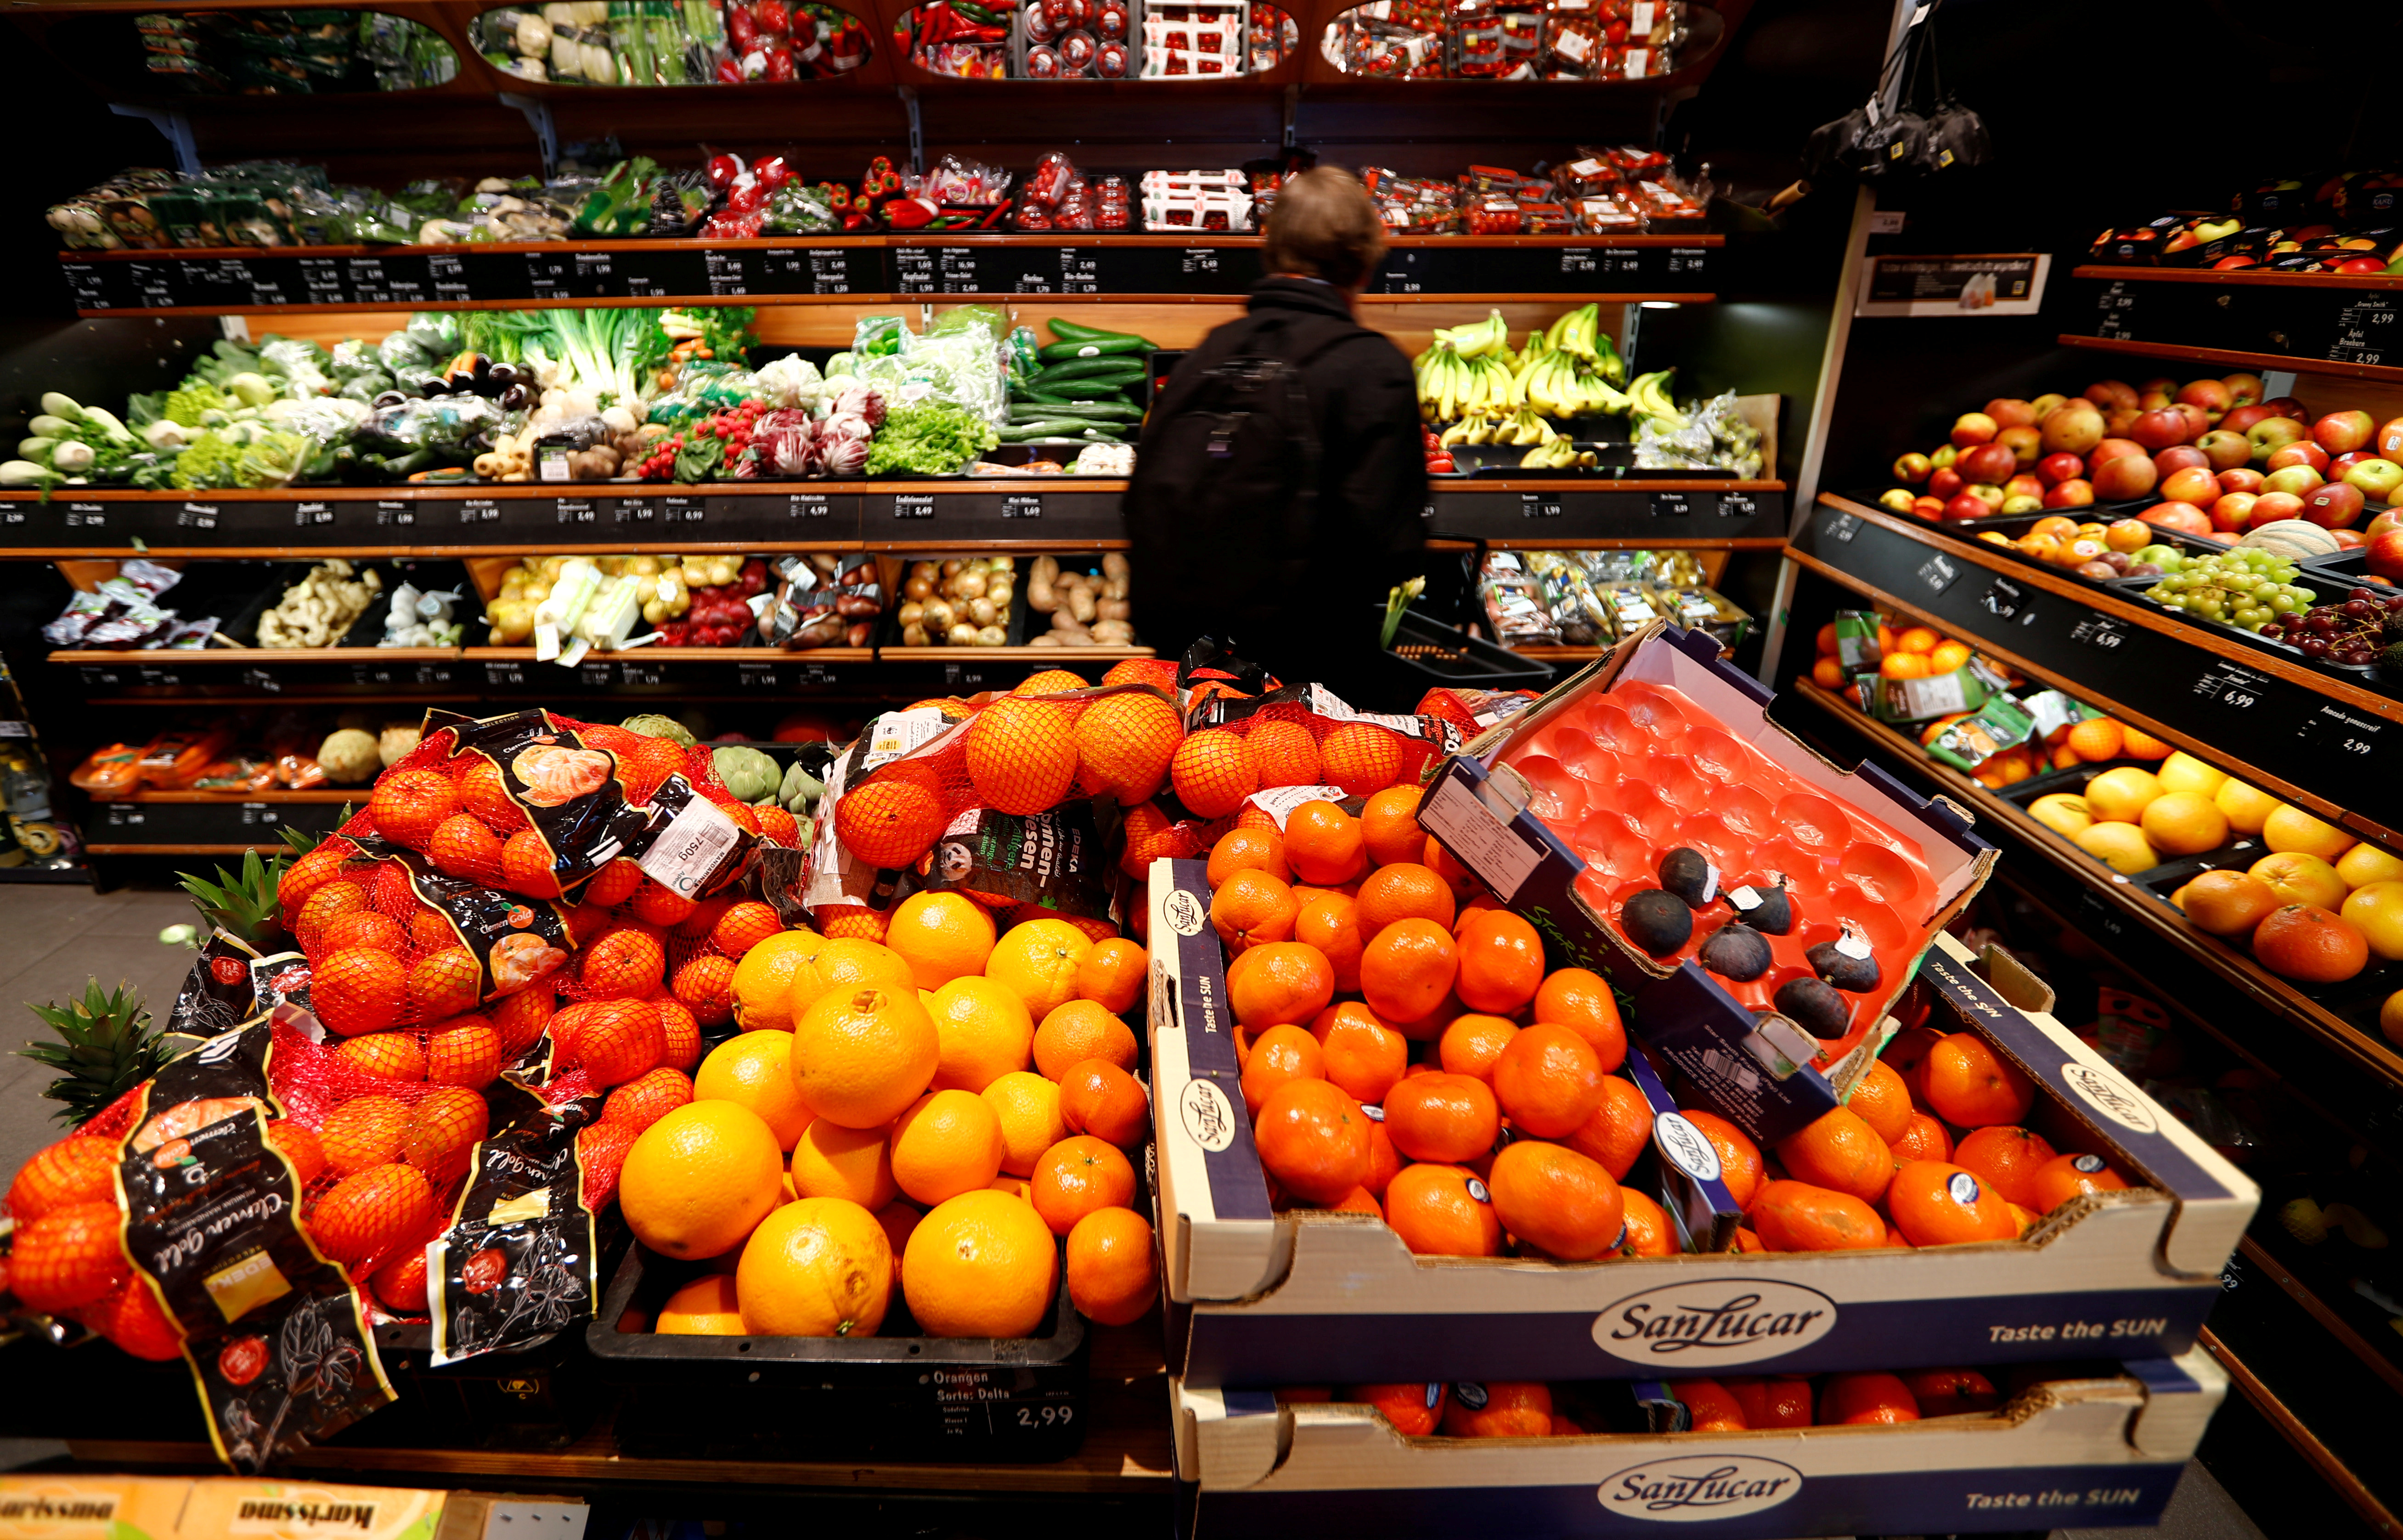 Full shelves with fruits are pictured in a supermarket during the spread of the coronavirus disease (COVID-19) in Berlin, Germany, March 17, 2020.   REUTERS/Fabrizio Bensch/File Photo